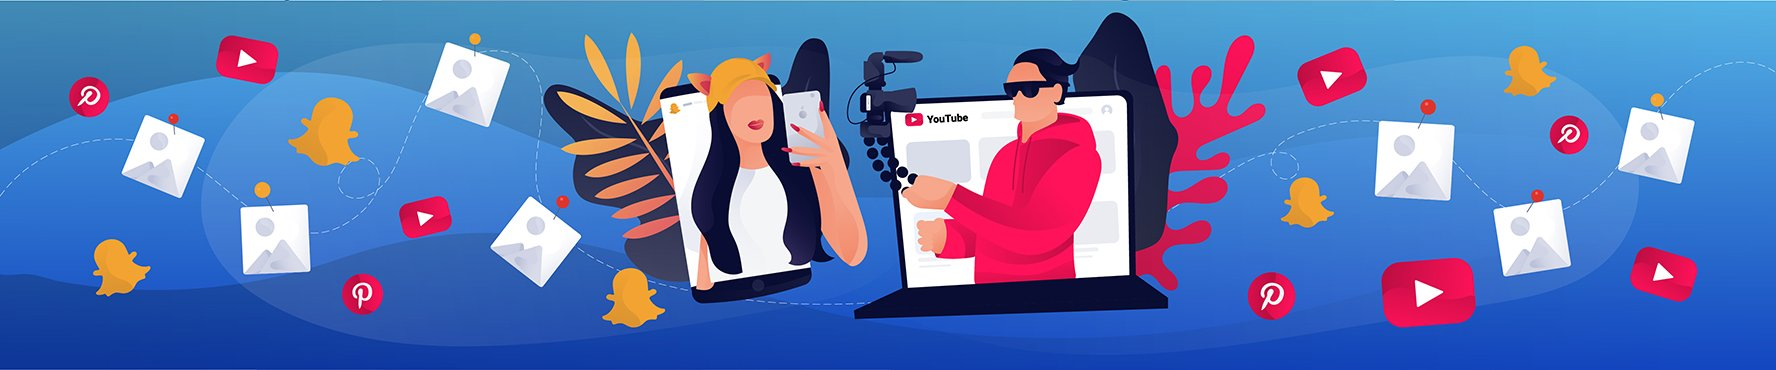 Influencer Marketing Beyond Instagram: Best Practices for Using YouTube, Pinterest and Snapchat Image